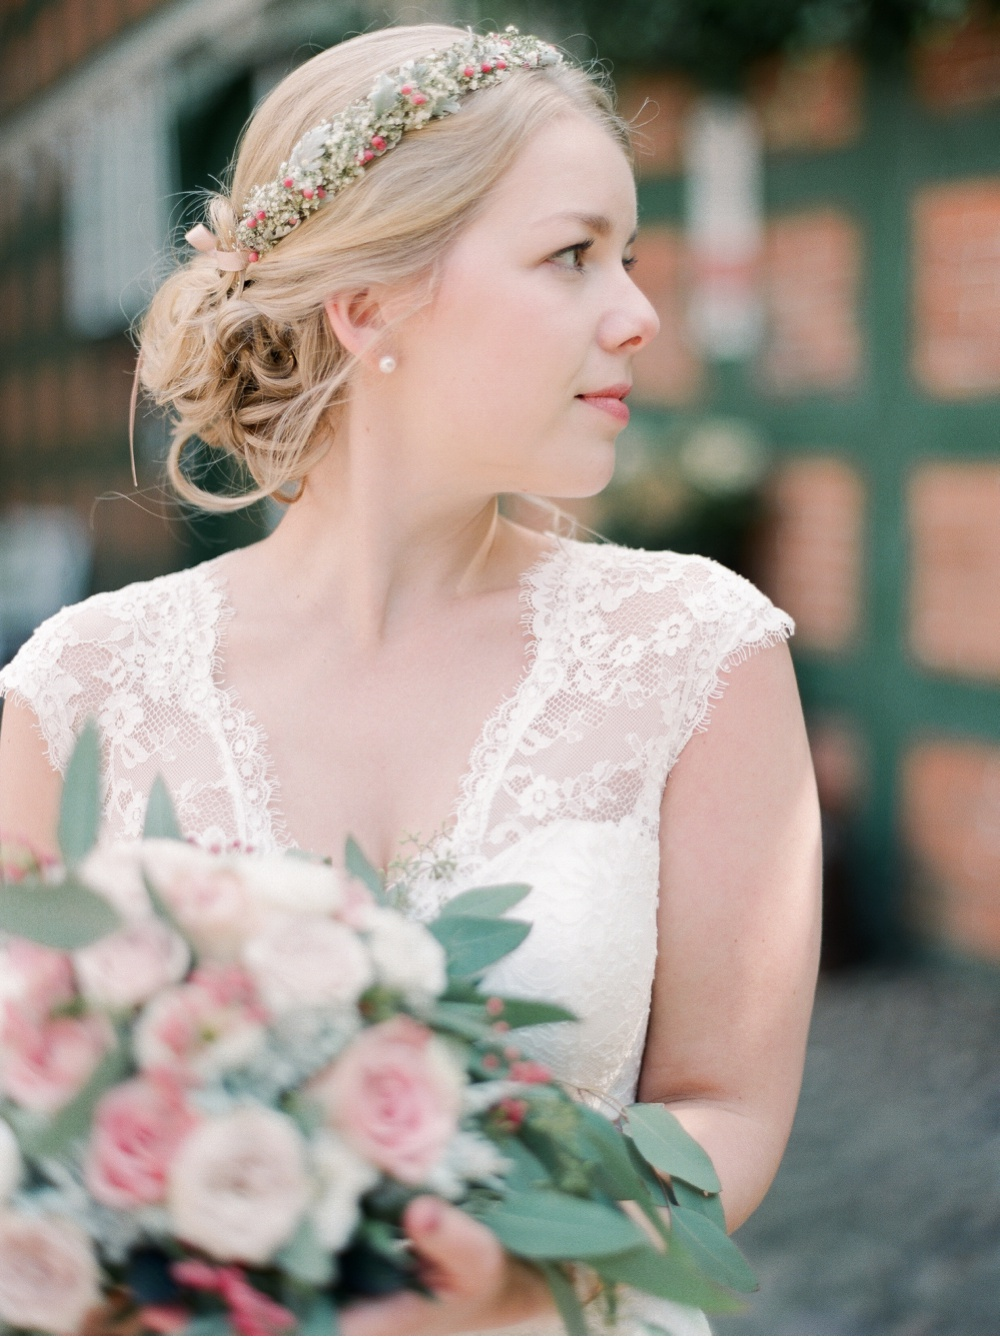 Paris_Provence_Destination_Wedding_Photographer©MadalinaSheldon_0032.jpg